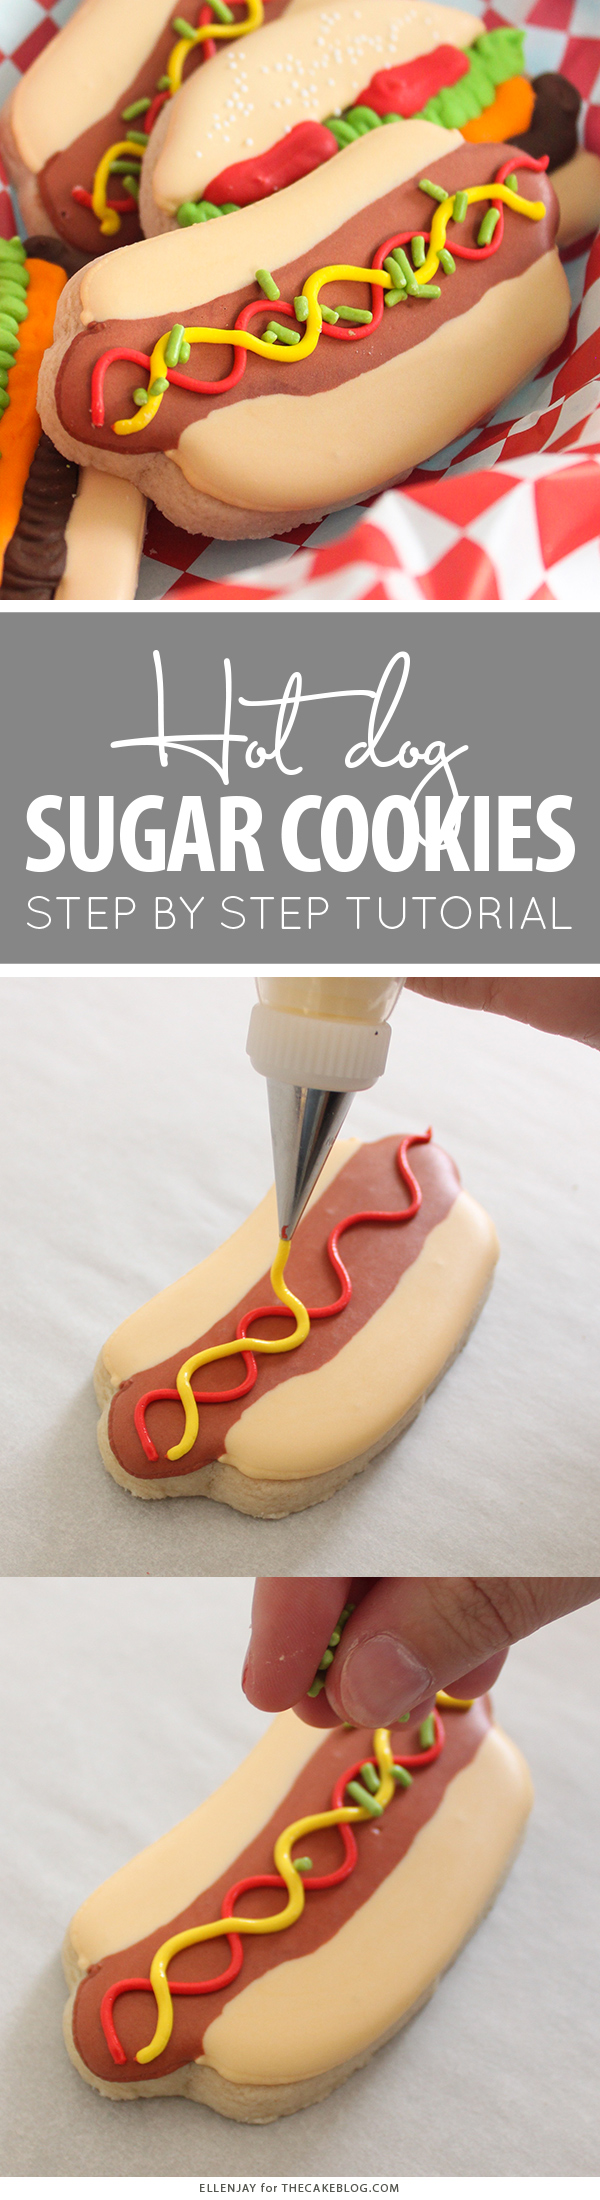 Hot Dog Sugar Cookies | by ellenJAY for TheCakeBlog.com